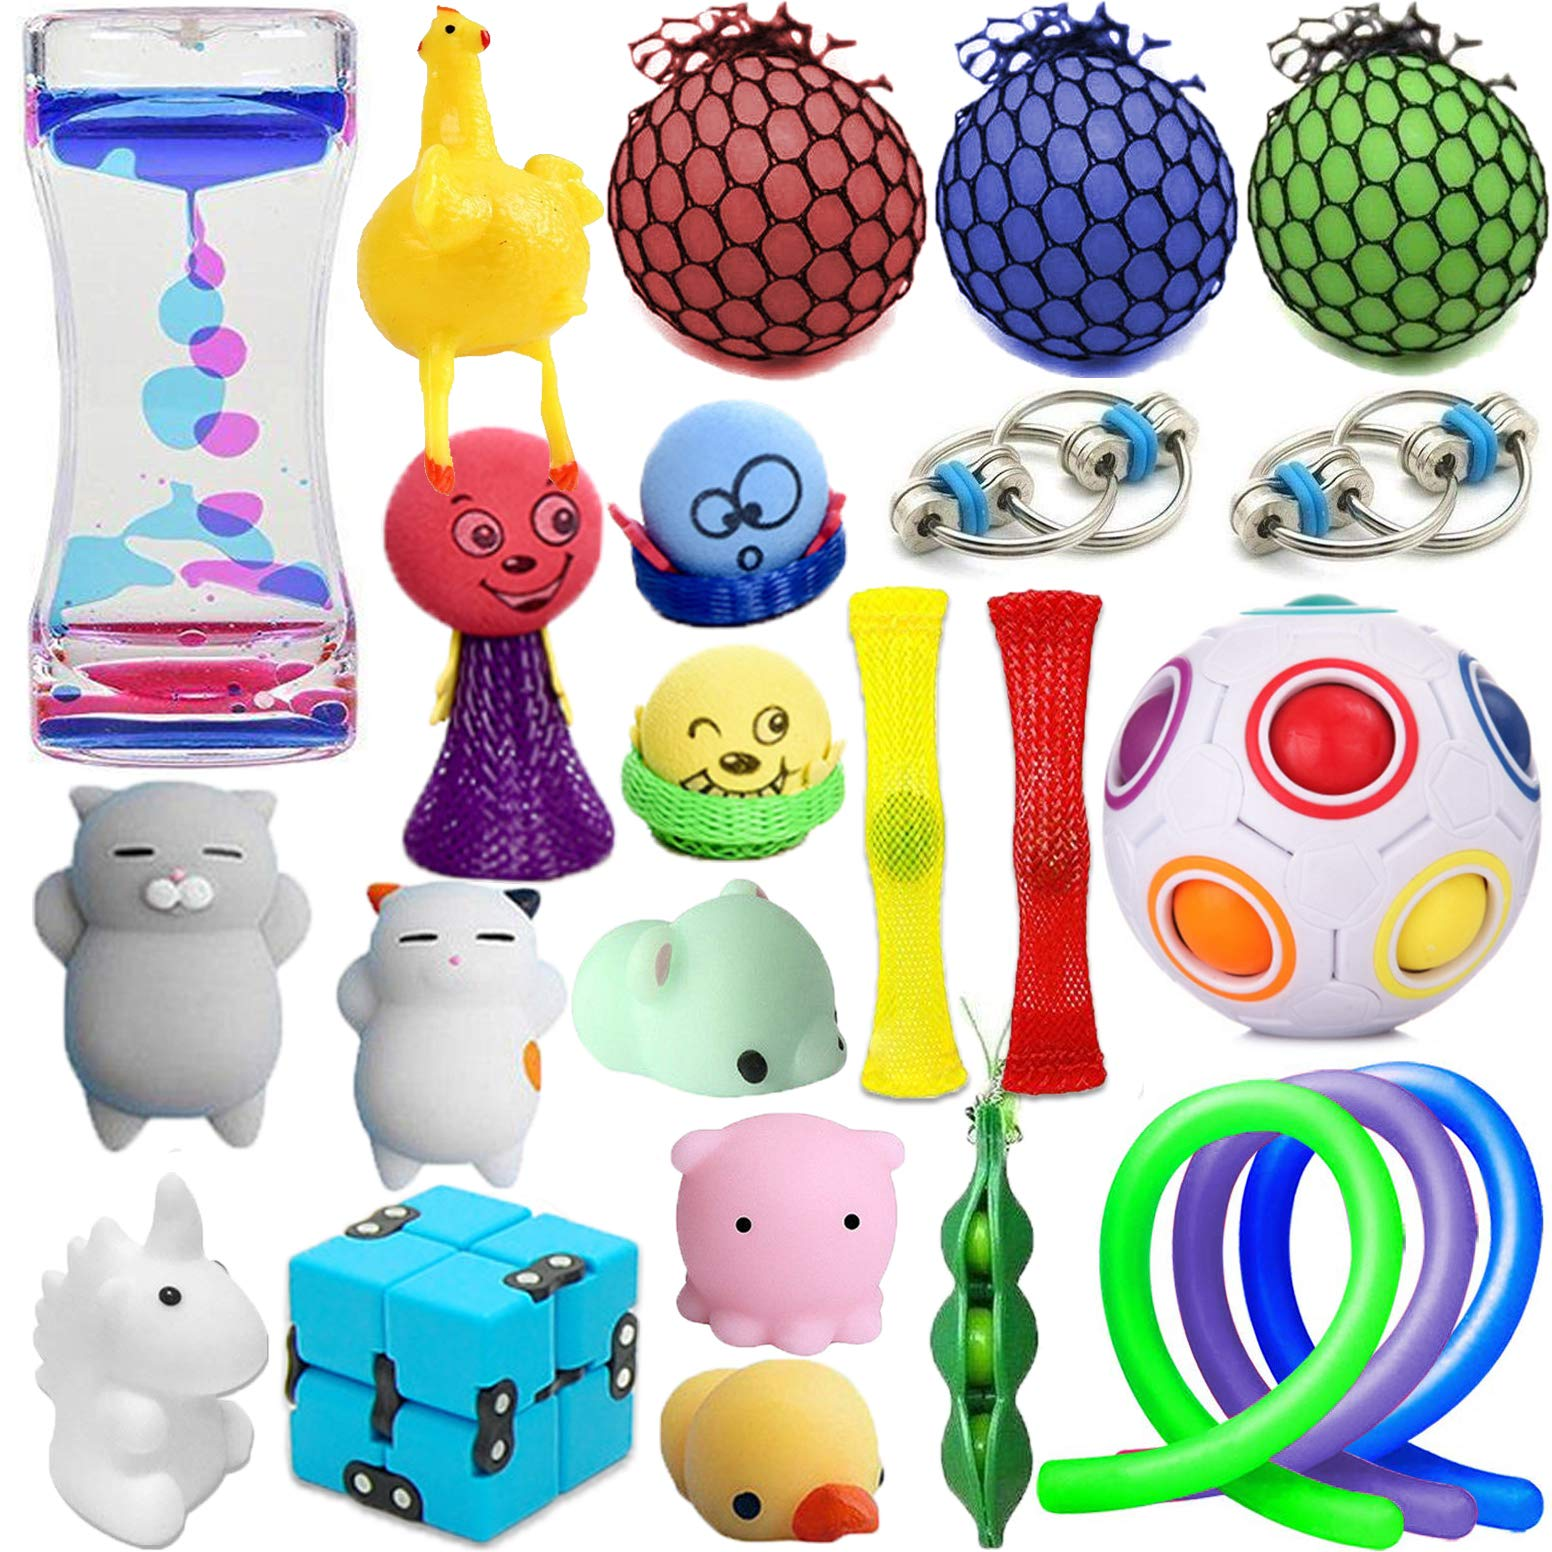 24 Pack Wankko Sensory Toys Set Relieves Stress & Anxiety Fidget Toy For Children Adult - Special Toys Assortment for Birthday Party Favors, Classroom Rewards Prizes, Carnival, Piñata Goodie Bag Fille